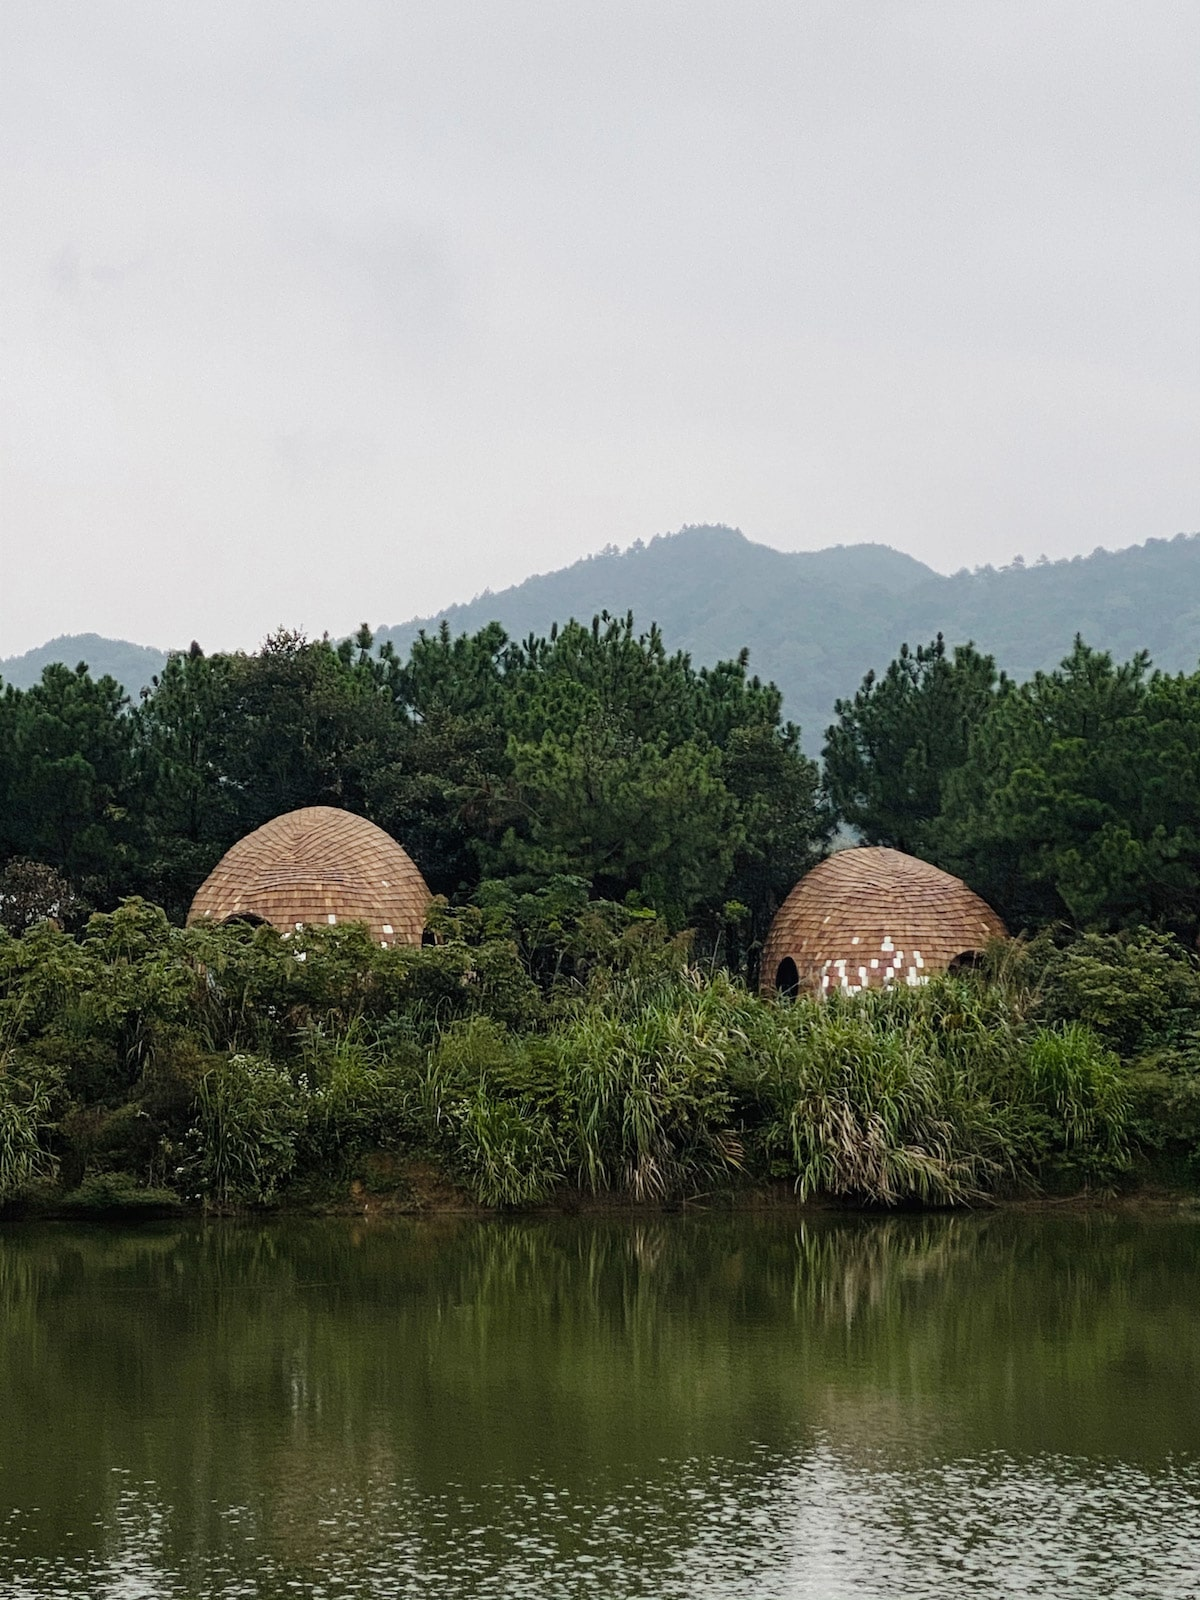 The Seeds Cabins in the Forests of Jiangxi